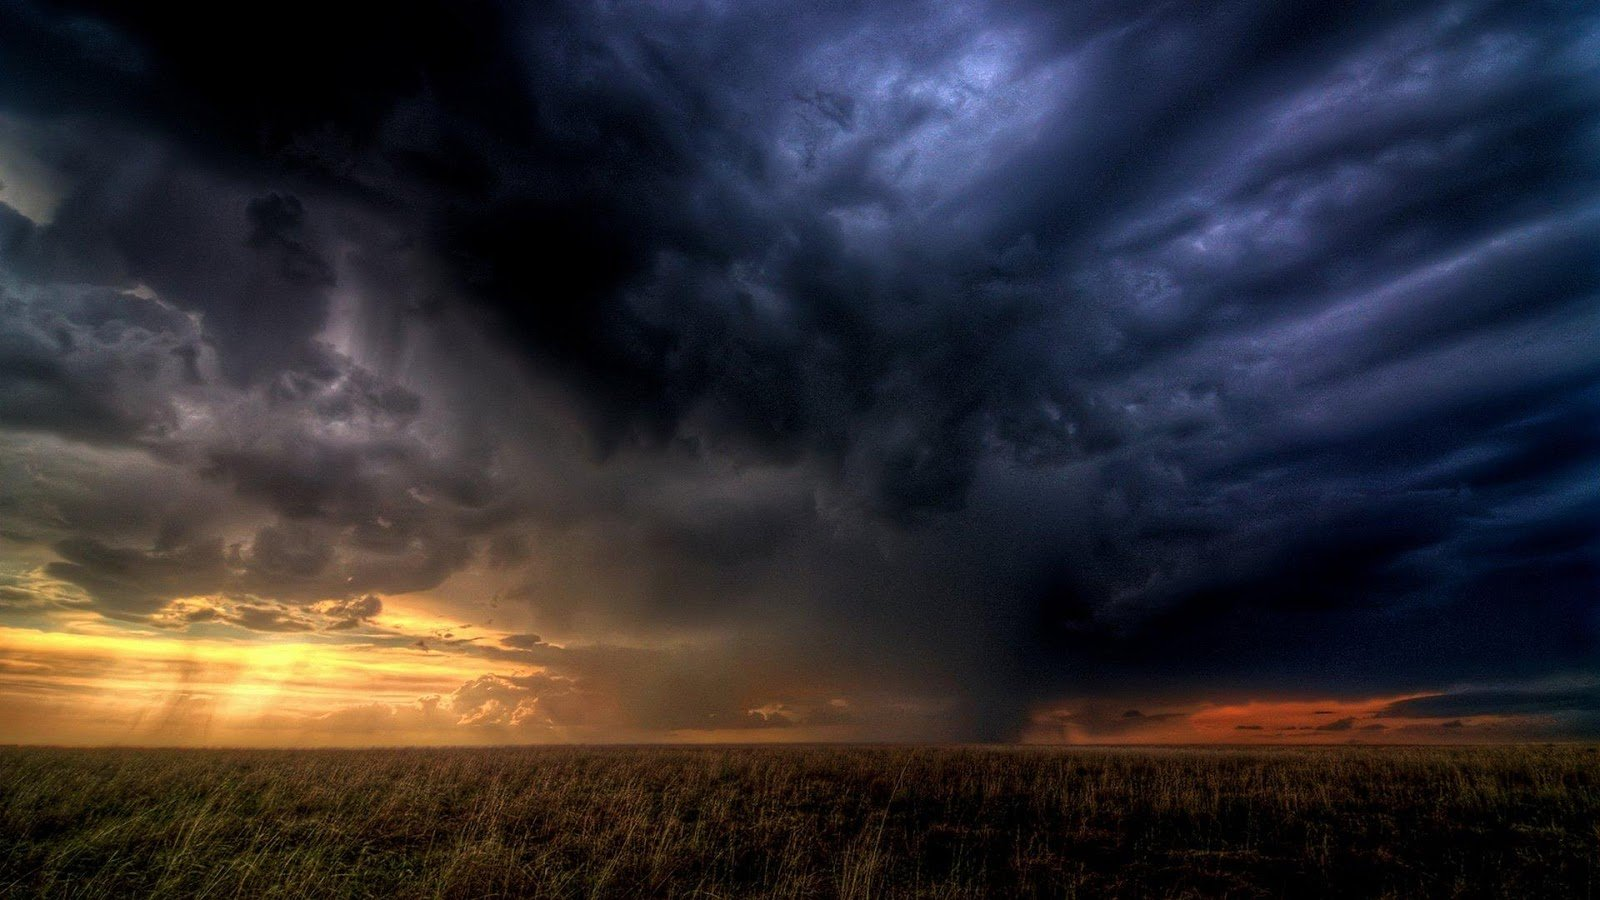 Storm Live Wallpaper HD   Android Apps on Google Play 1600x900